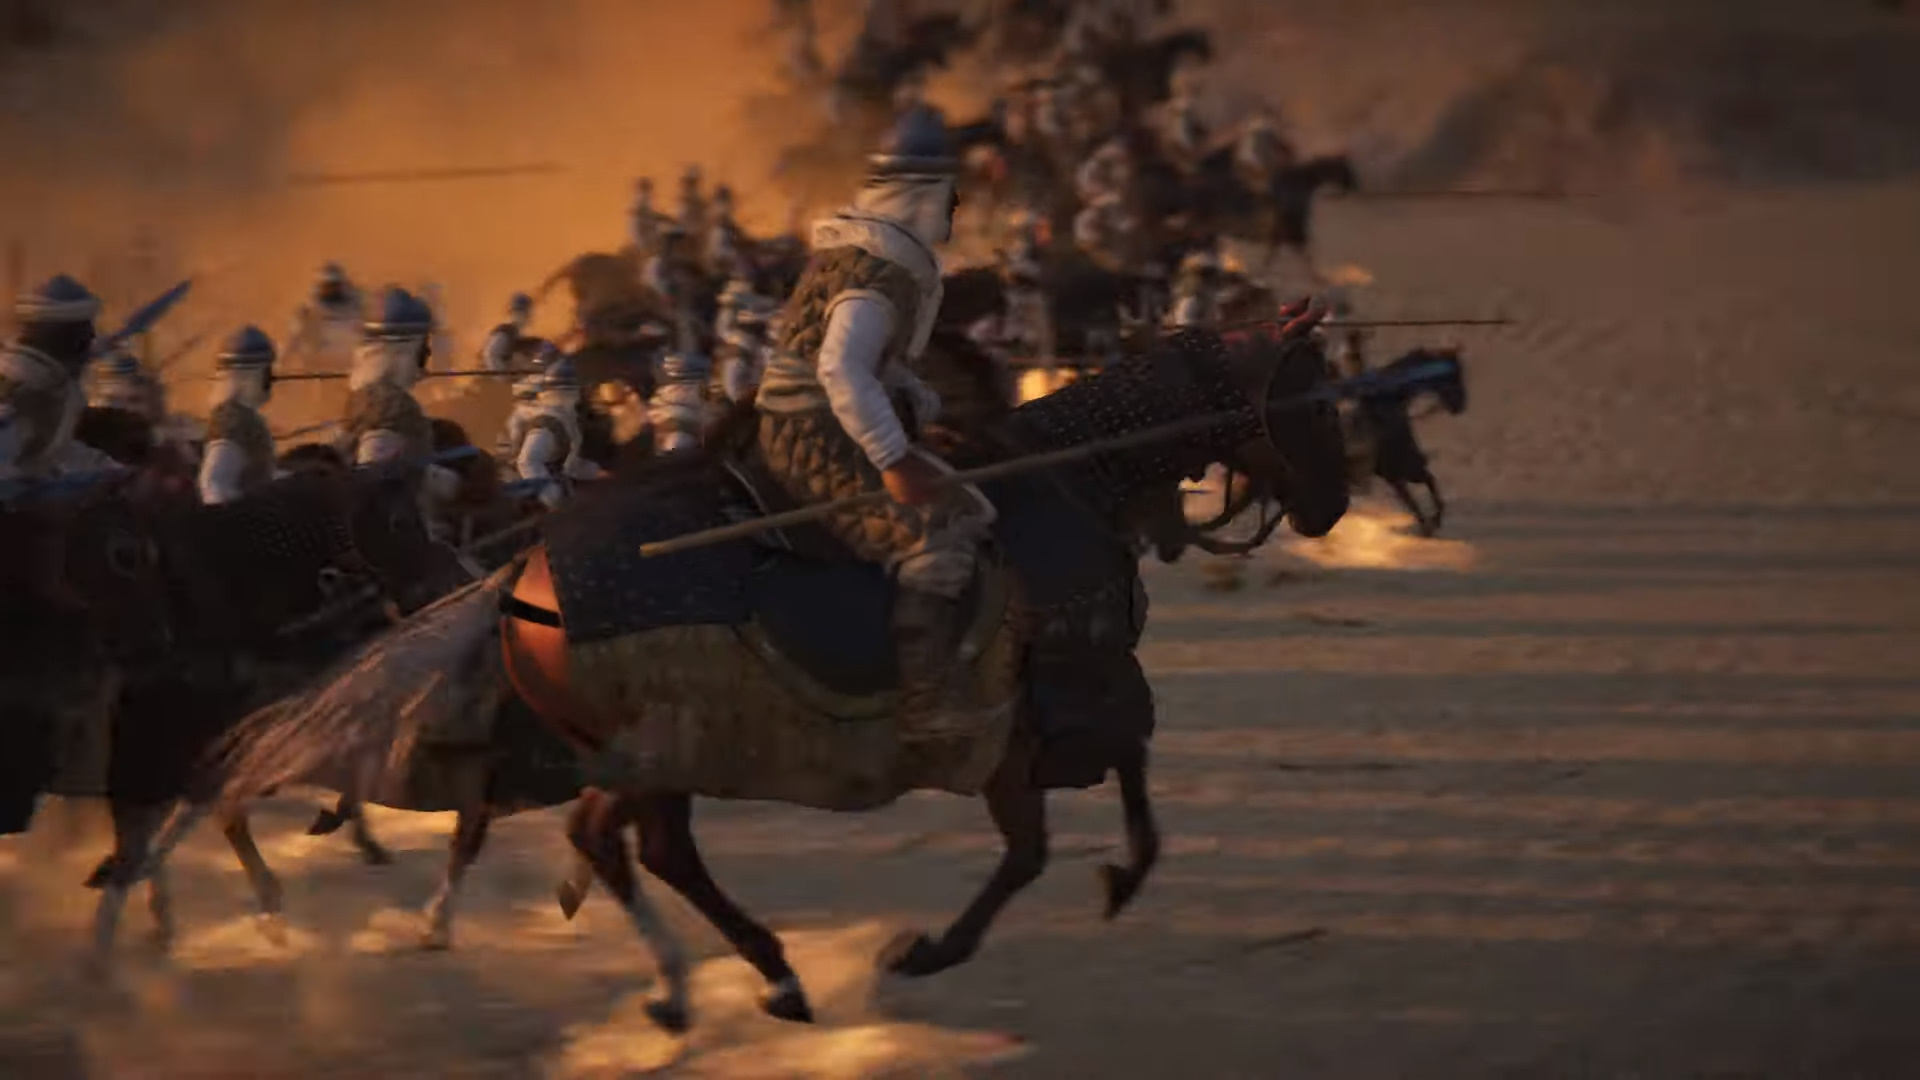 Why Mount Blade Ii Bannerlord Is Choosing Early Access After